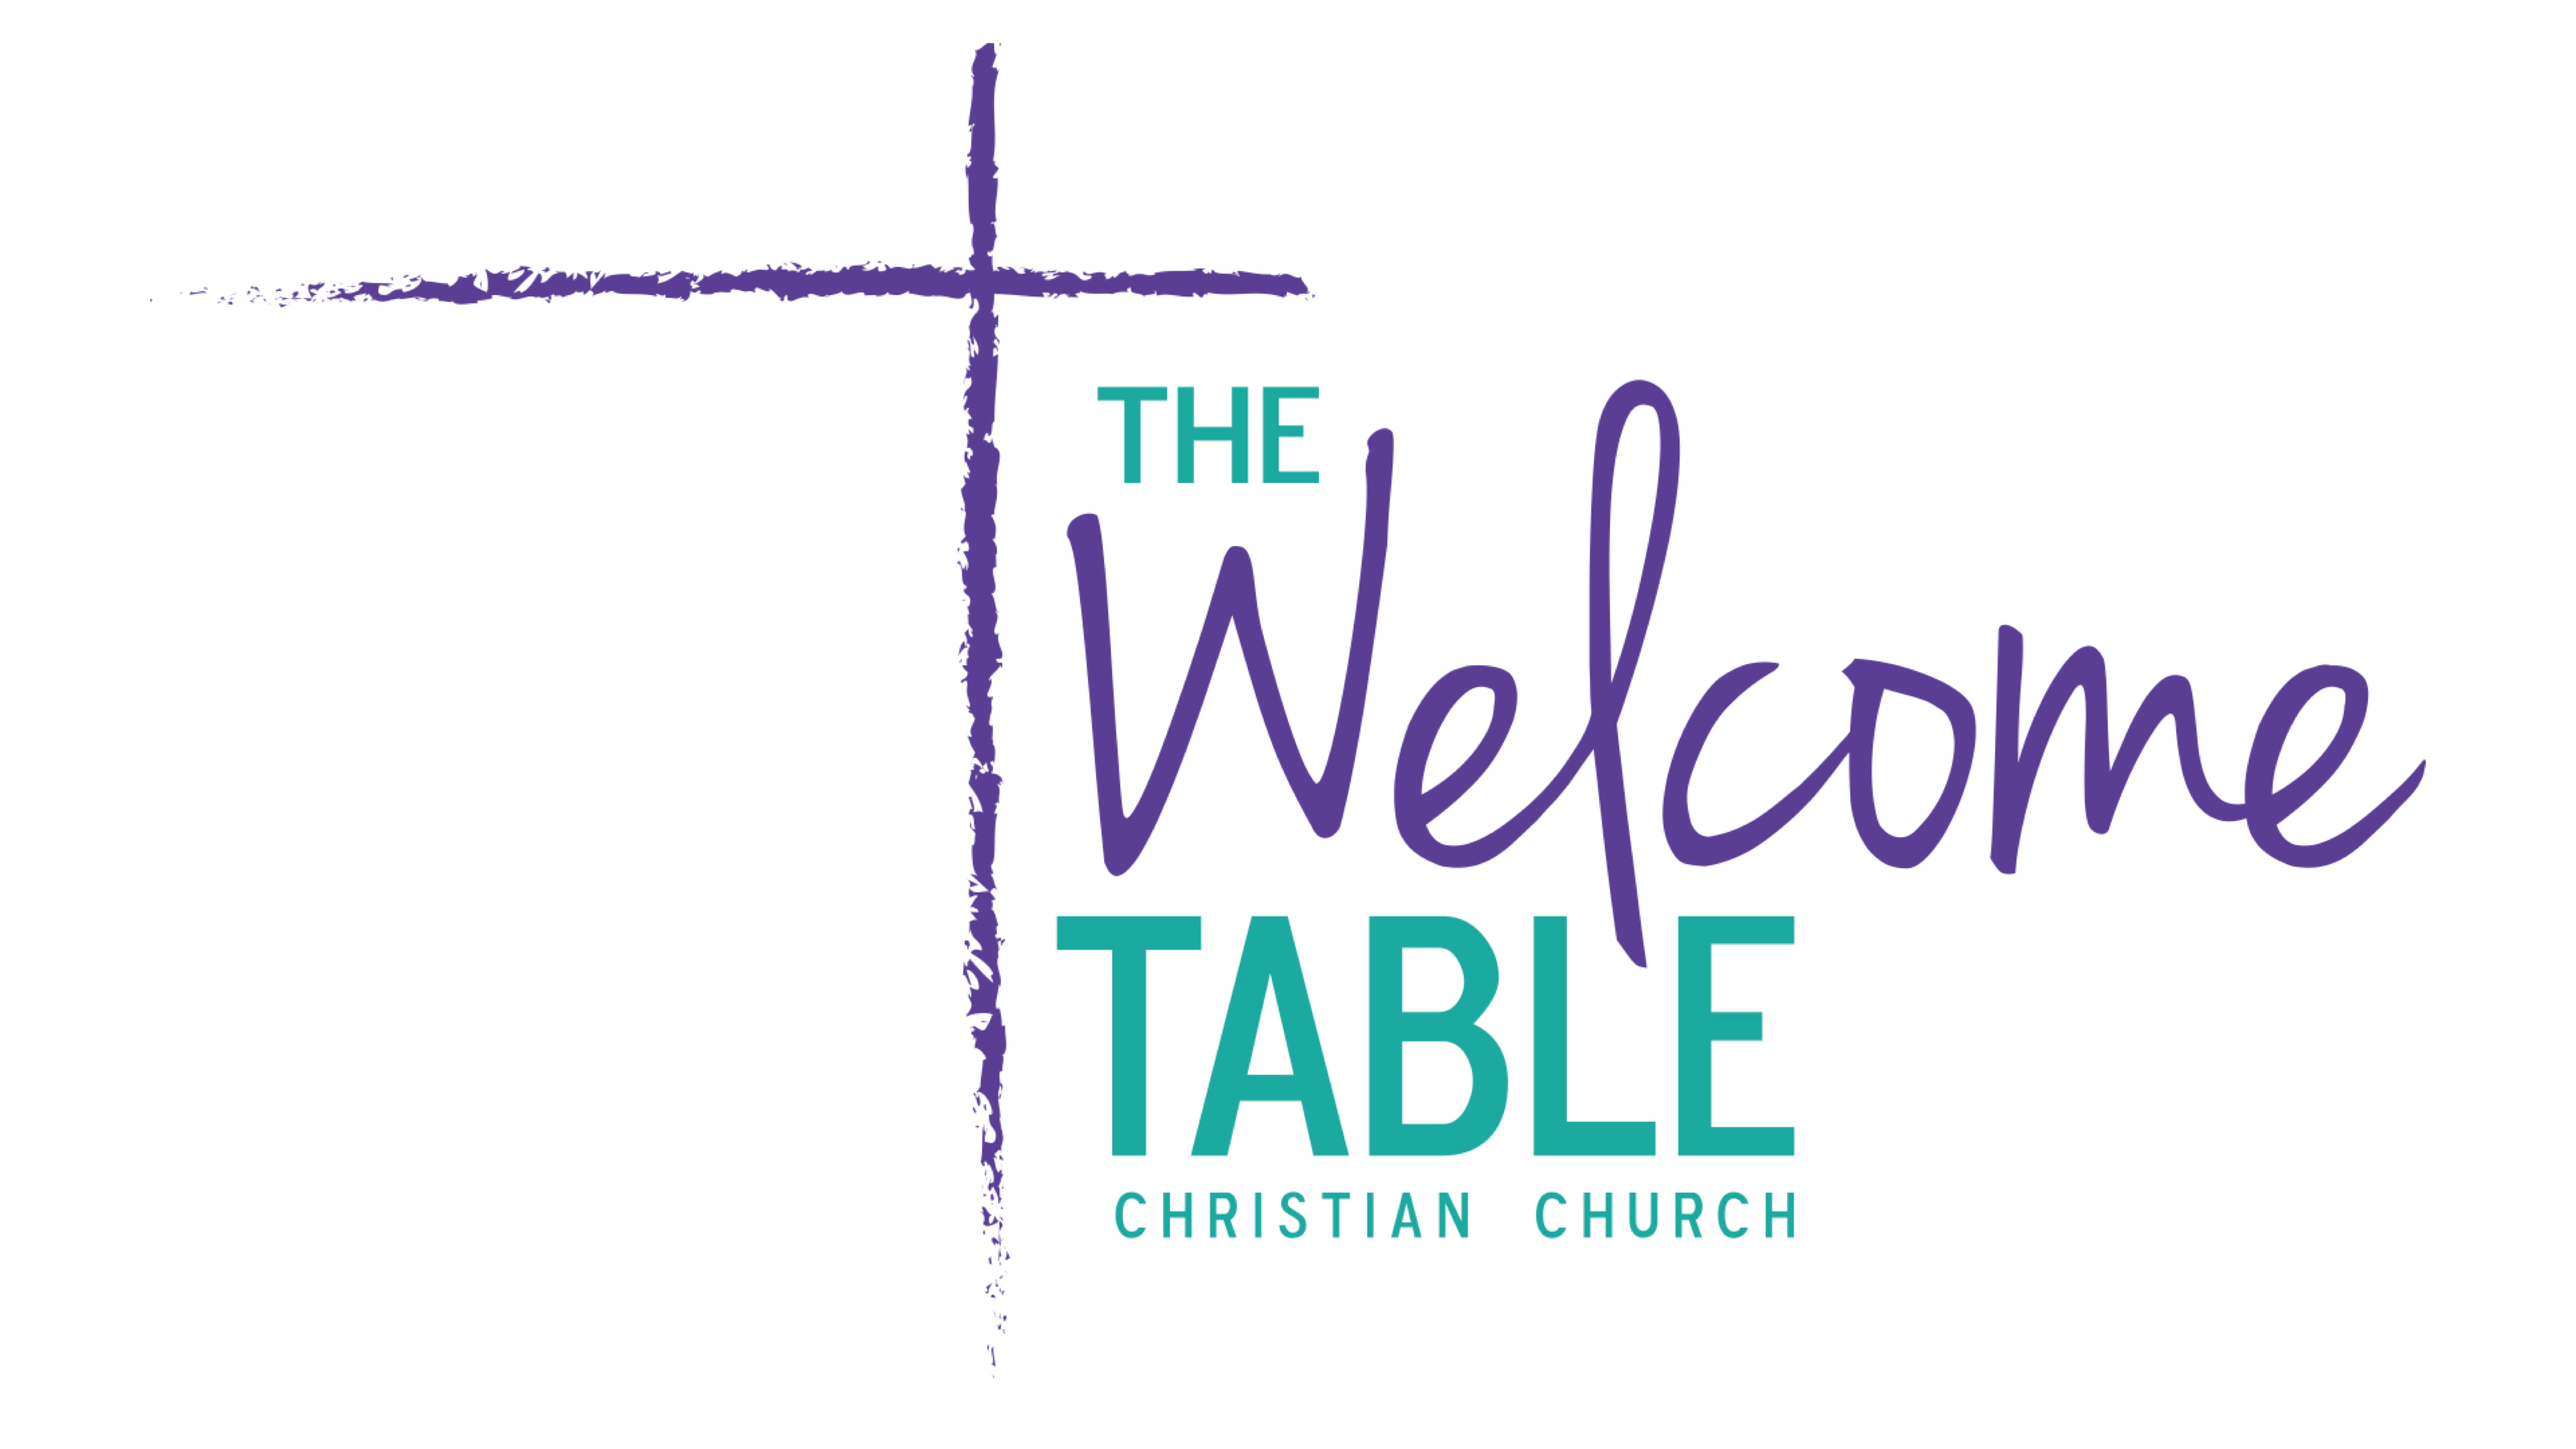 The Welcome Table Christian Church